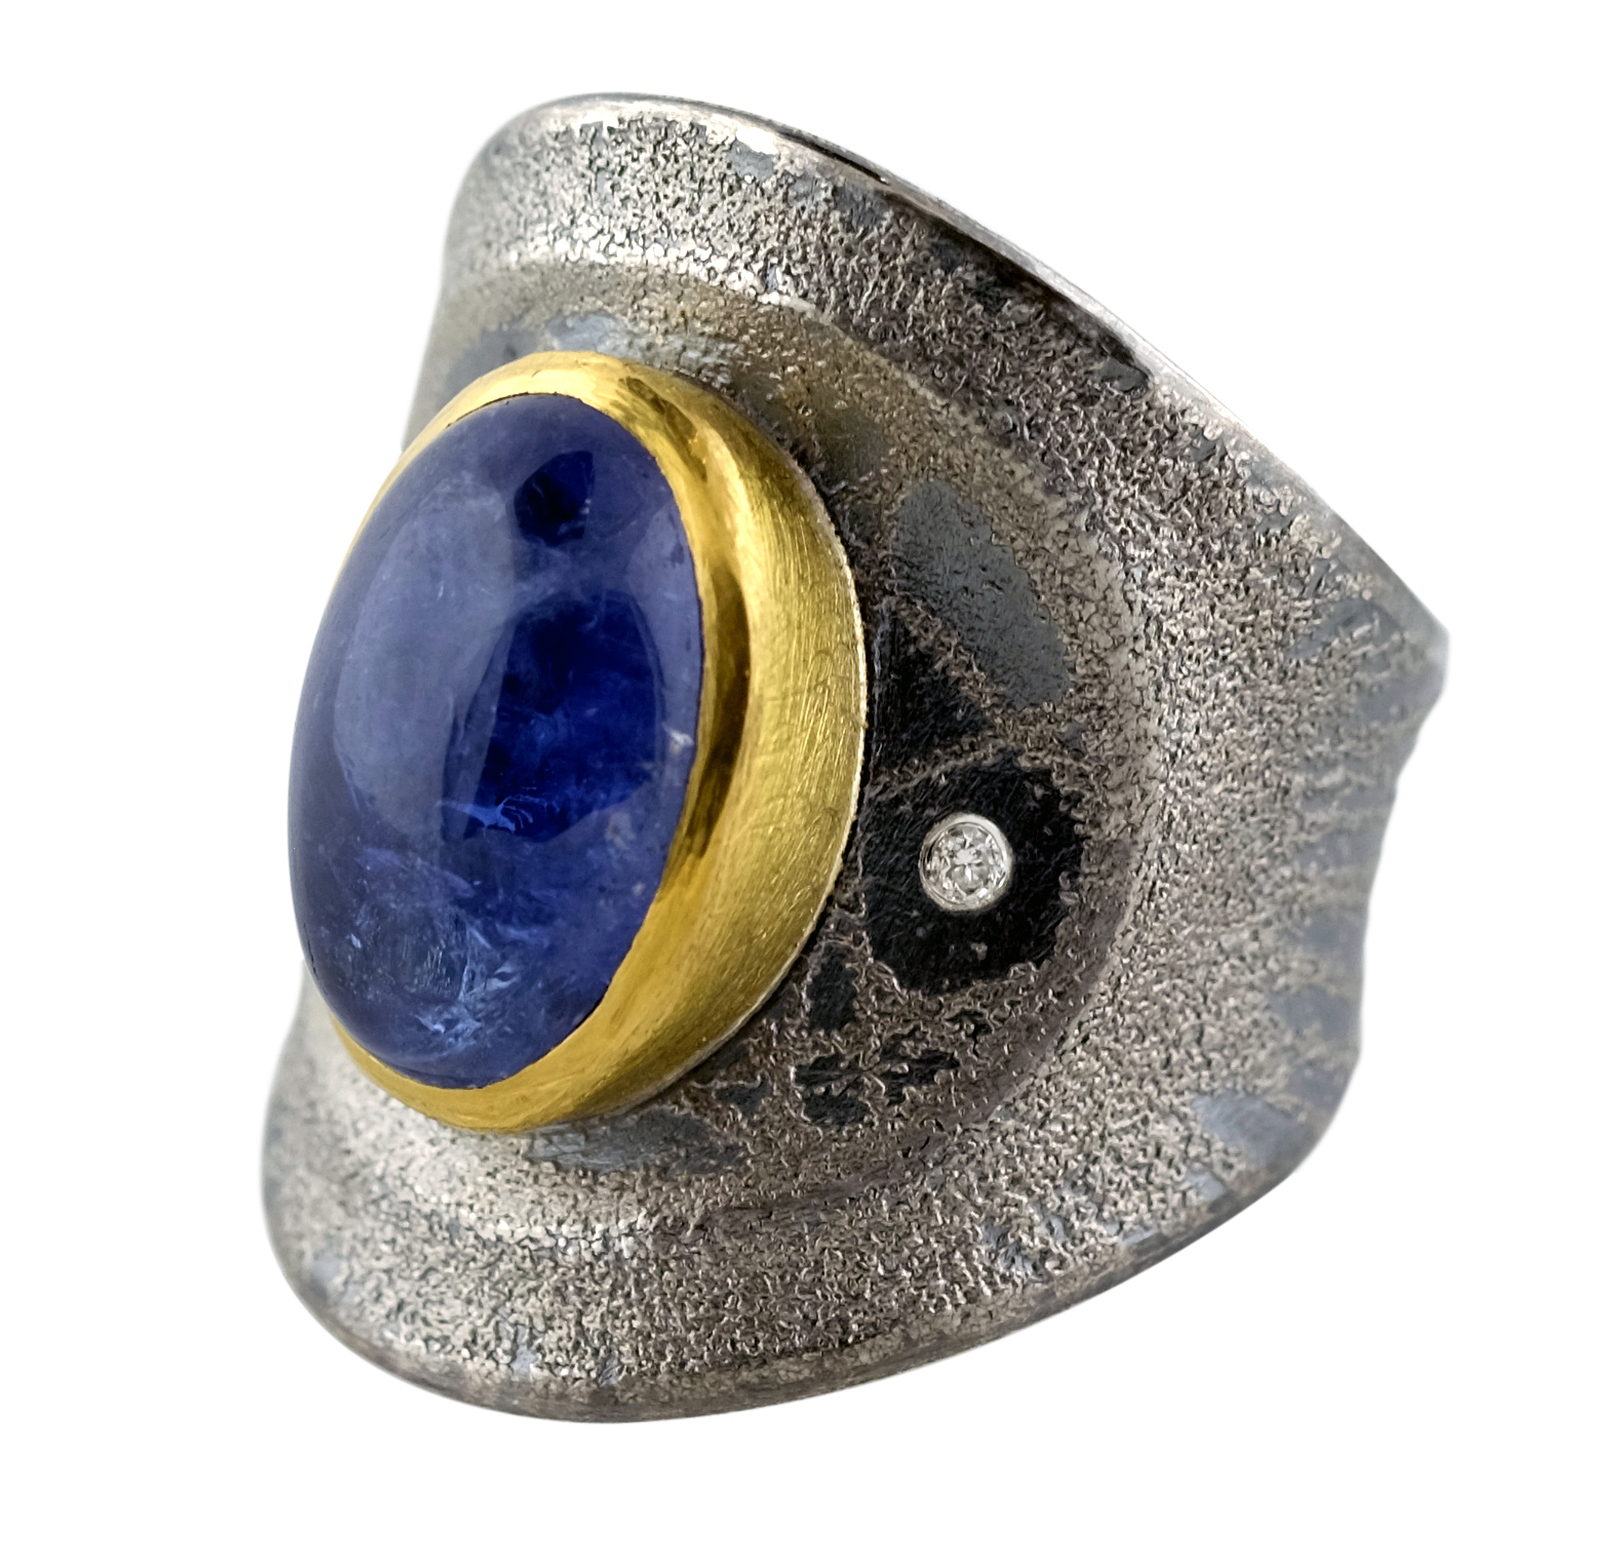 Atelier Zobel sapphire ring | JCK On Your Market